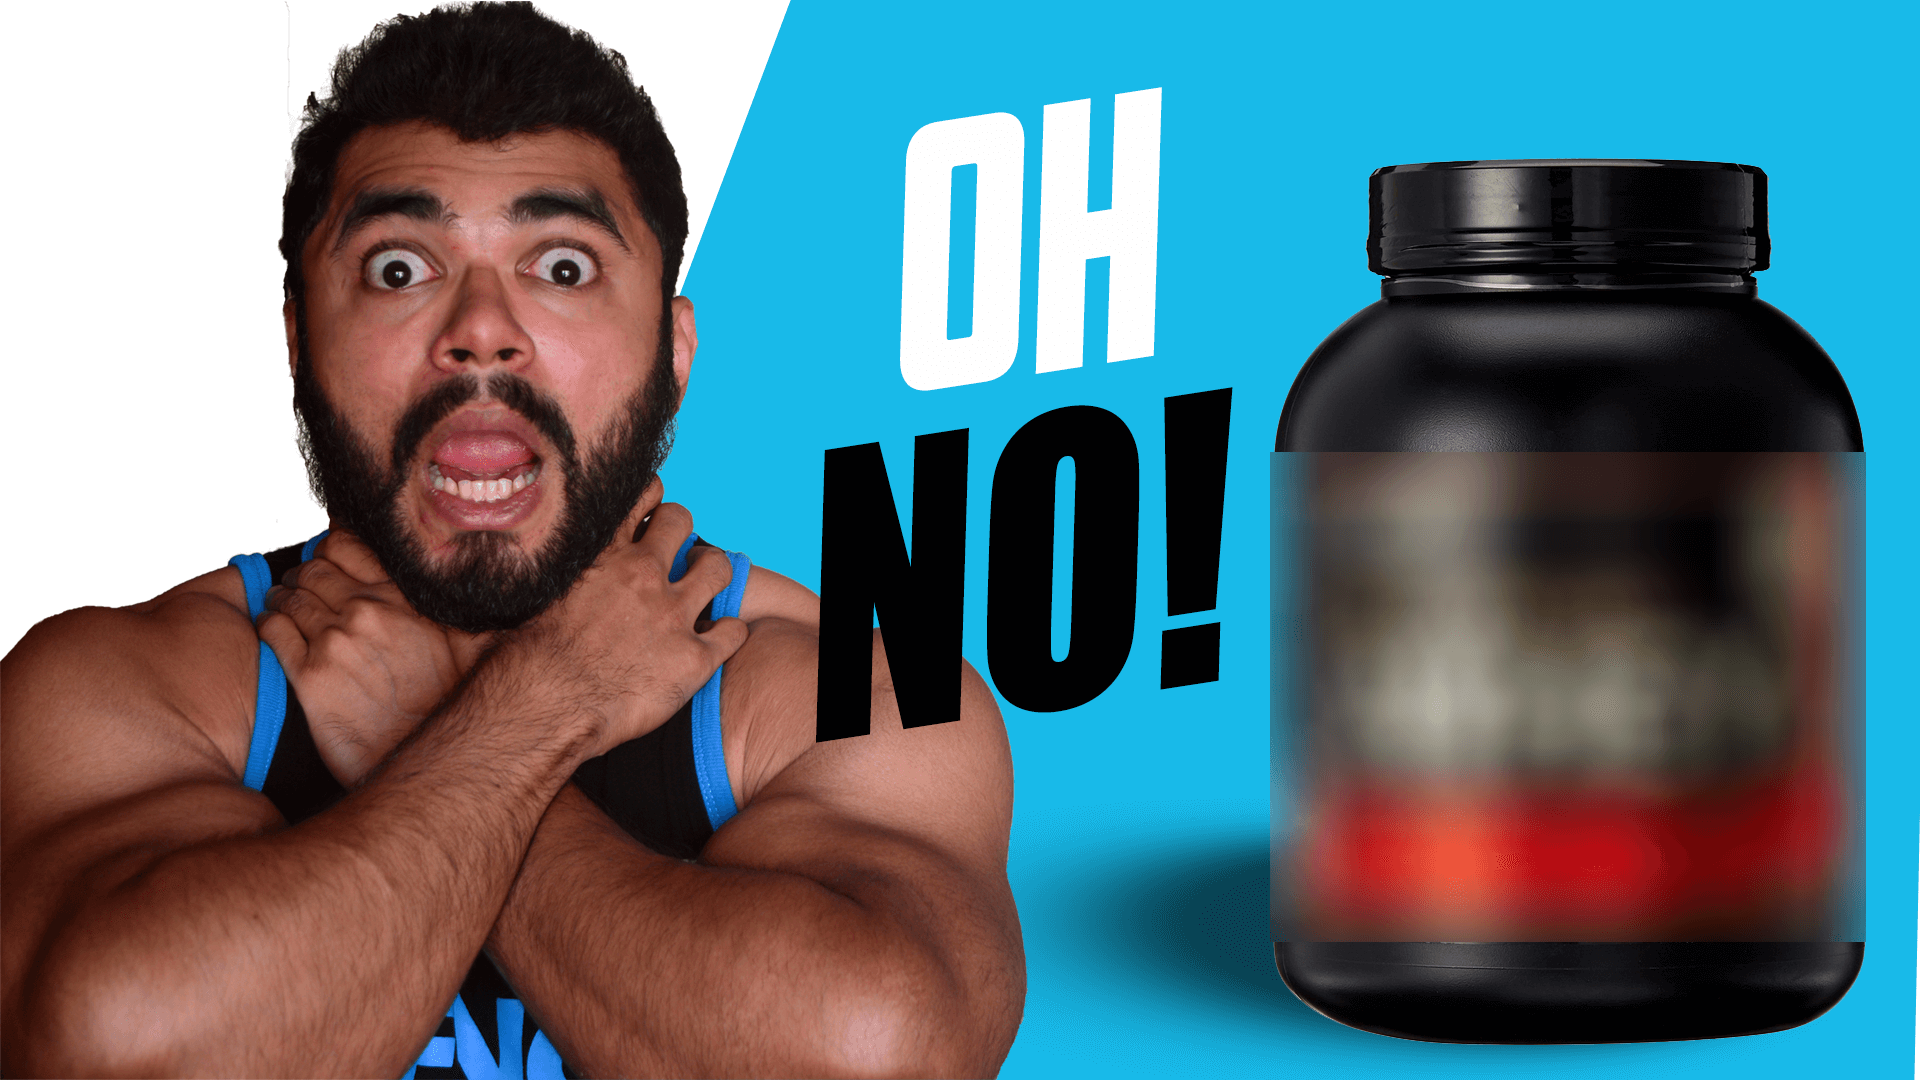 Are your favorite Supplements DANGEROUS?